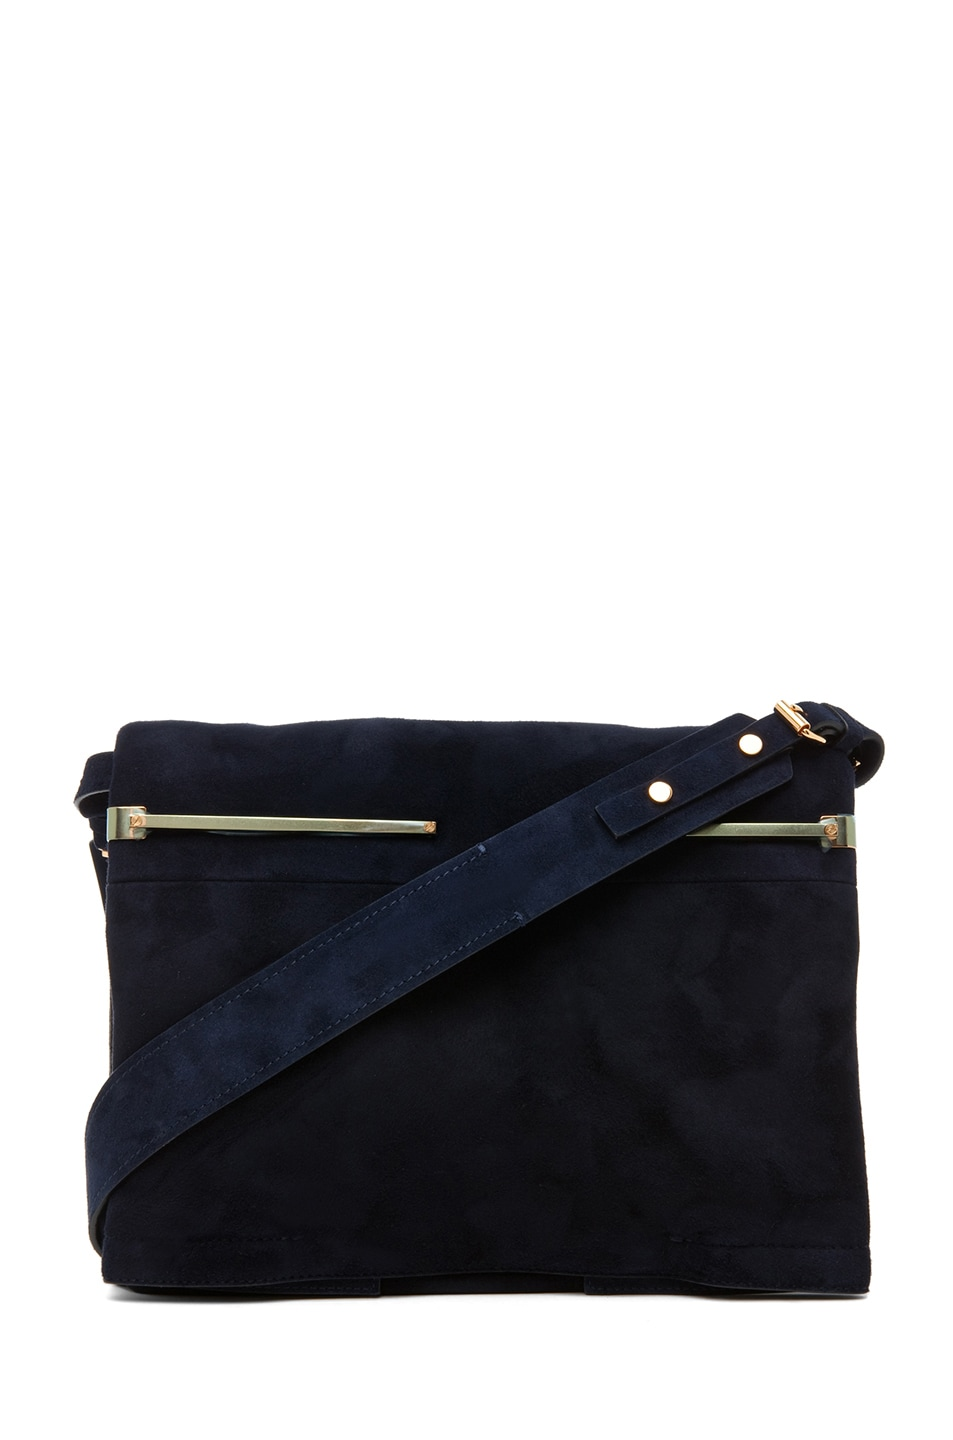 Image 1 of Lanvin Small Shoulder Bag in Blue Marine